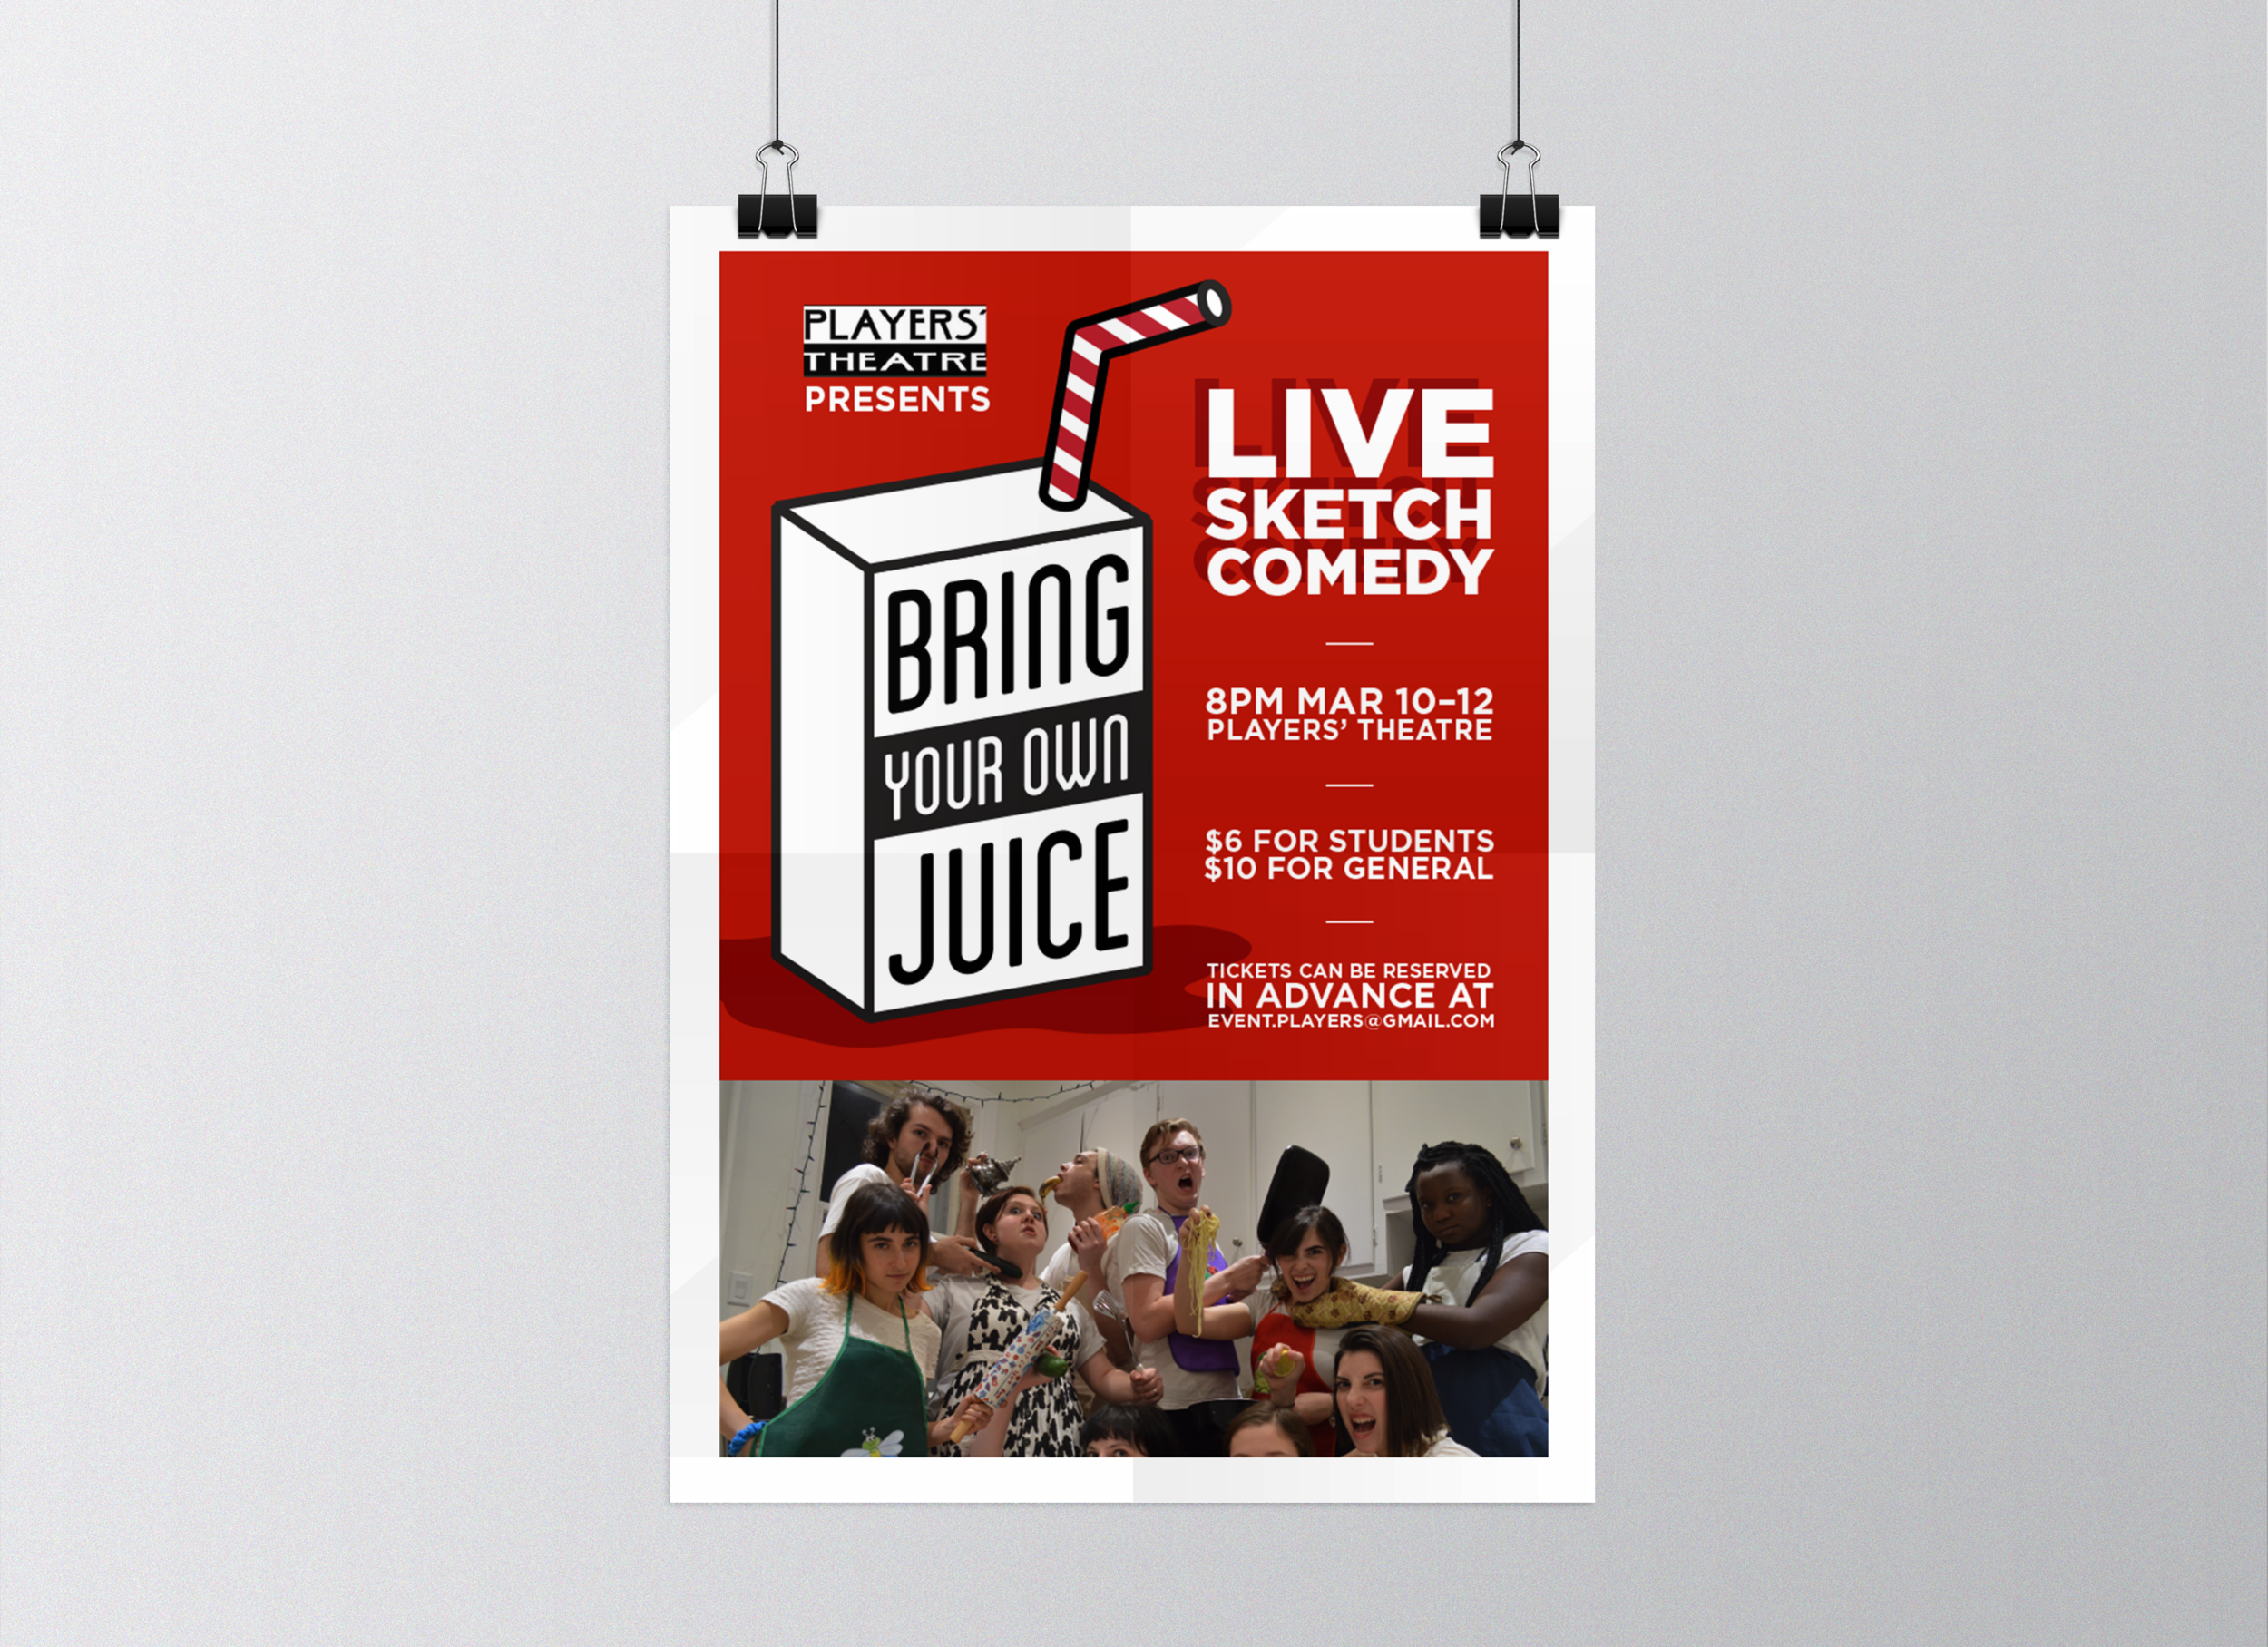 An Annual Sketch Comedy Show - Written, produced, and directed by McGill's one and only sketch comedy troupe in one short month, Bring Your Own Juice is an annually presented spectacle of sharp, irreverent hilarity.The juice is a metaphor.